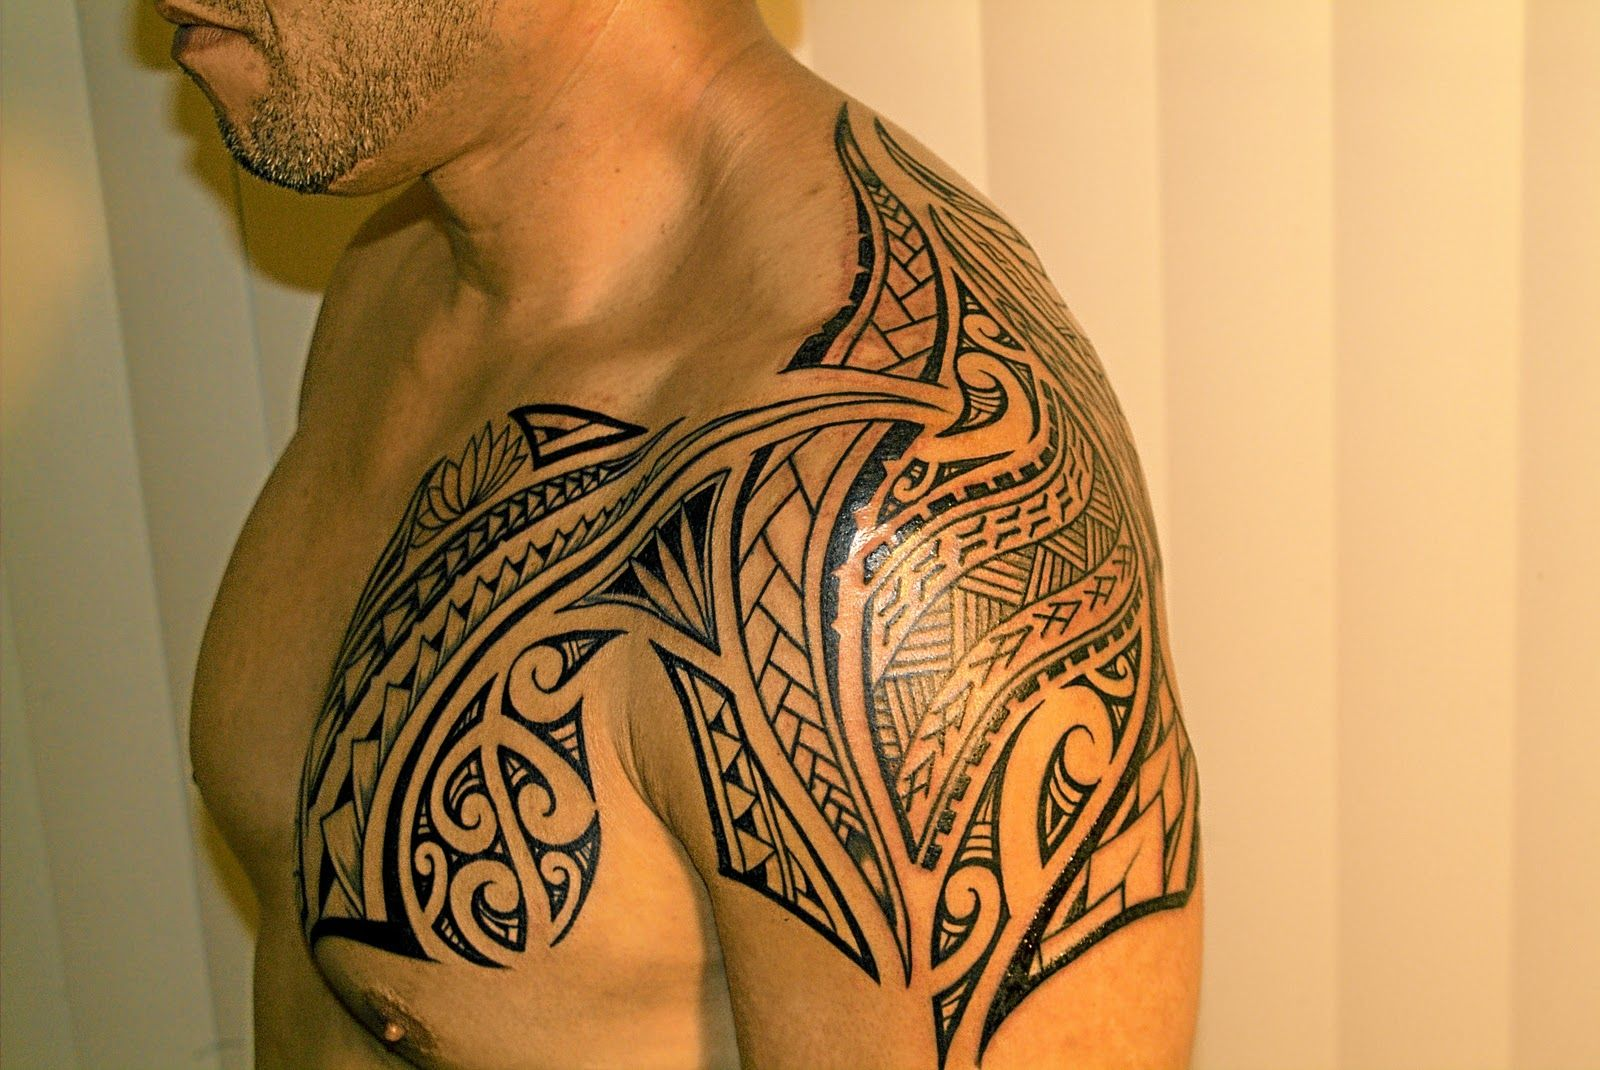 Polynesian tattoo on arm and chest - Polynesian Shoulder And Chest Tattoos Real Photo Pictures Images